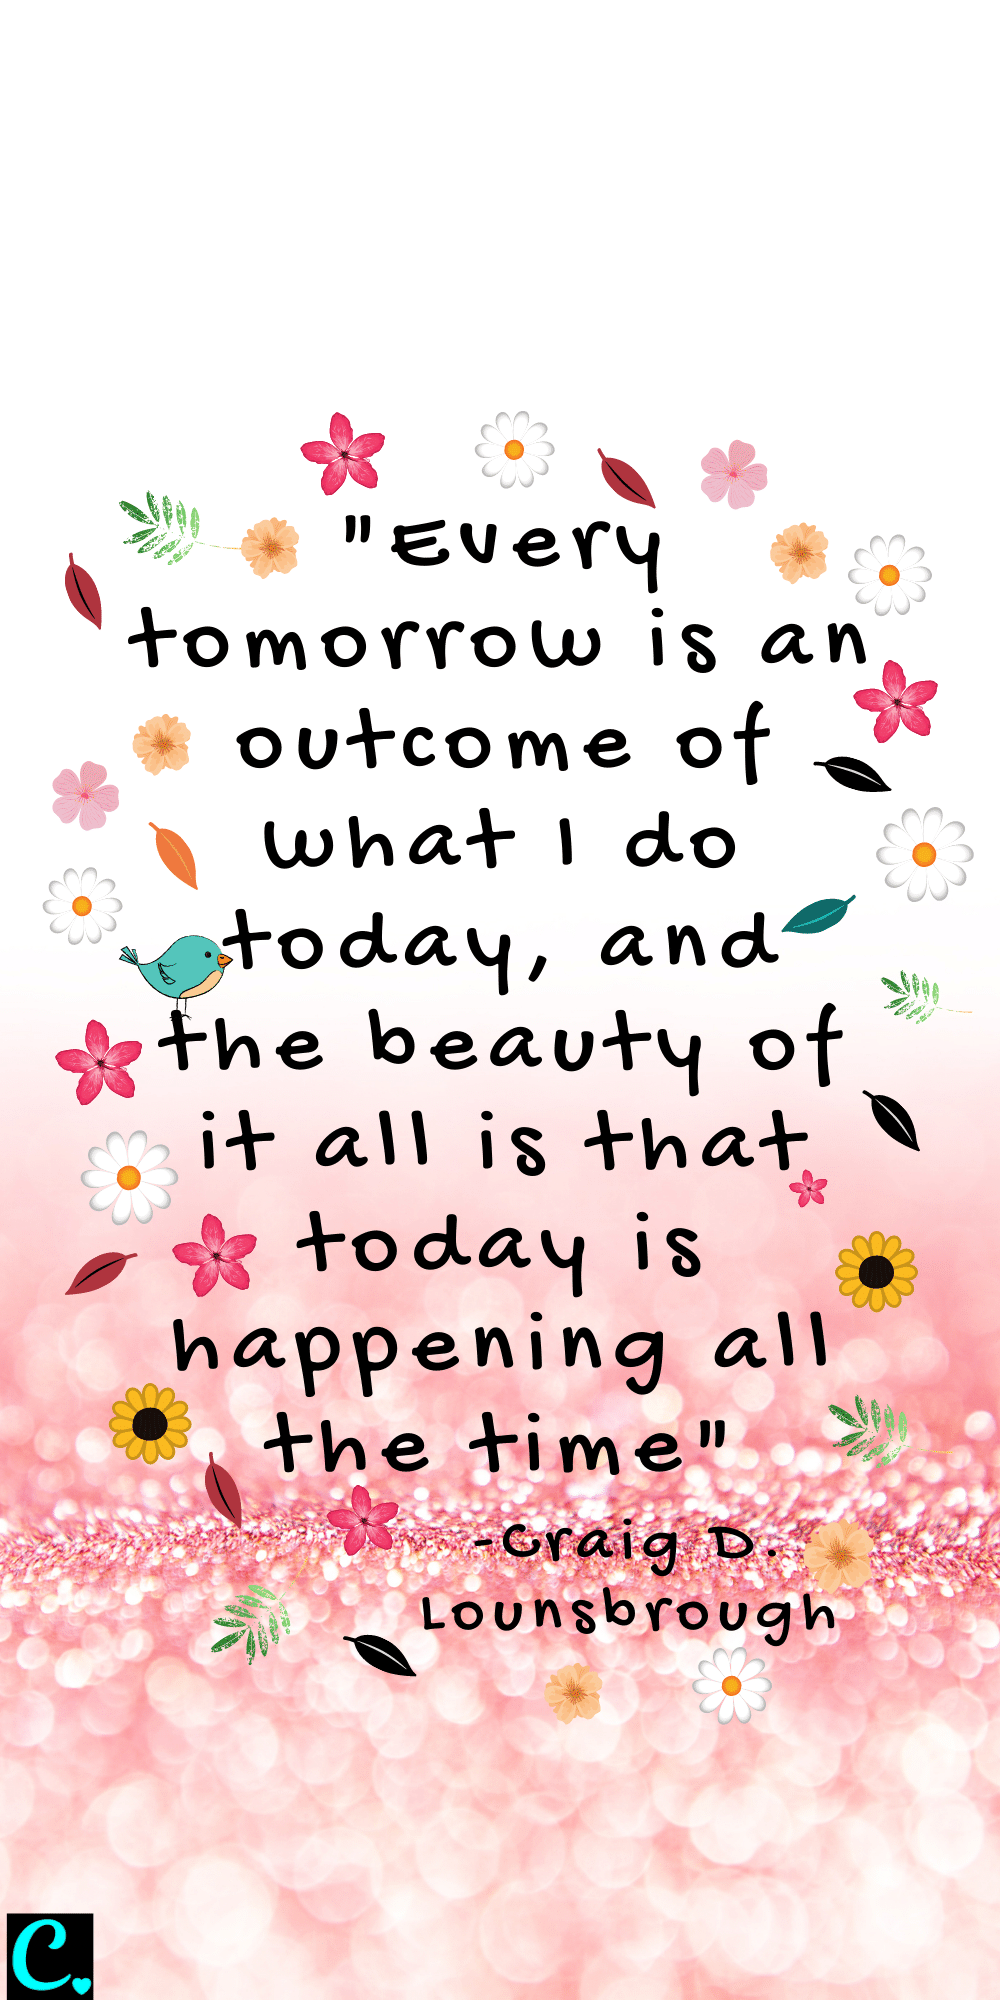 """""""Every tomorrow is an outcome of what I do today, and the beauty of it all is that today is happening all the time"""" - Craig D. Lounsbrough"""